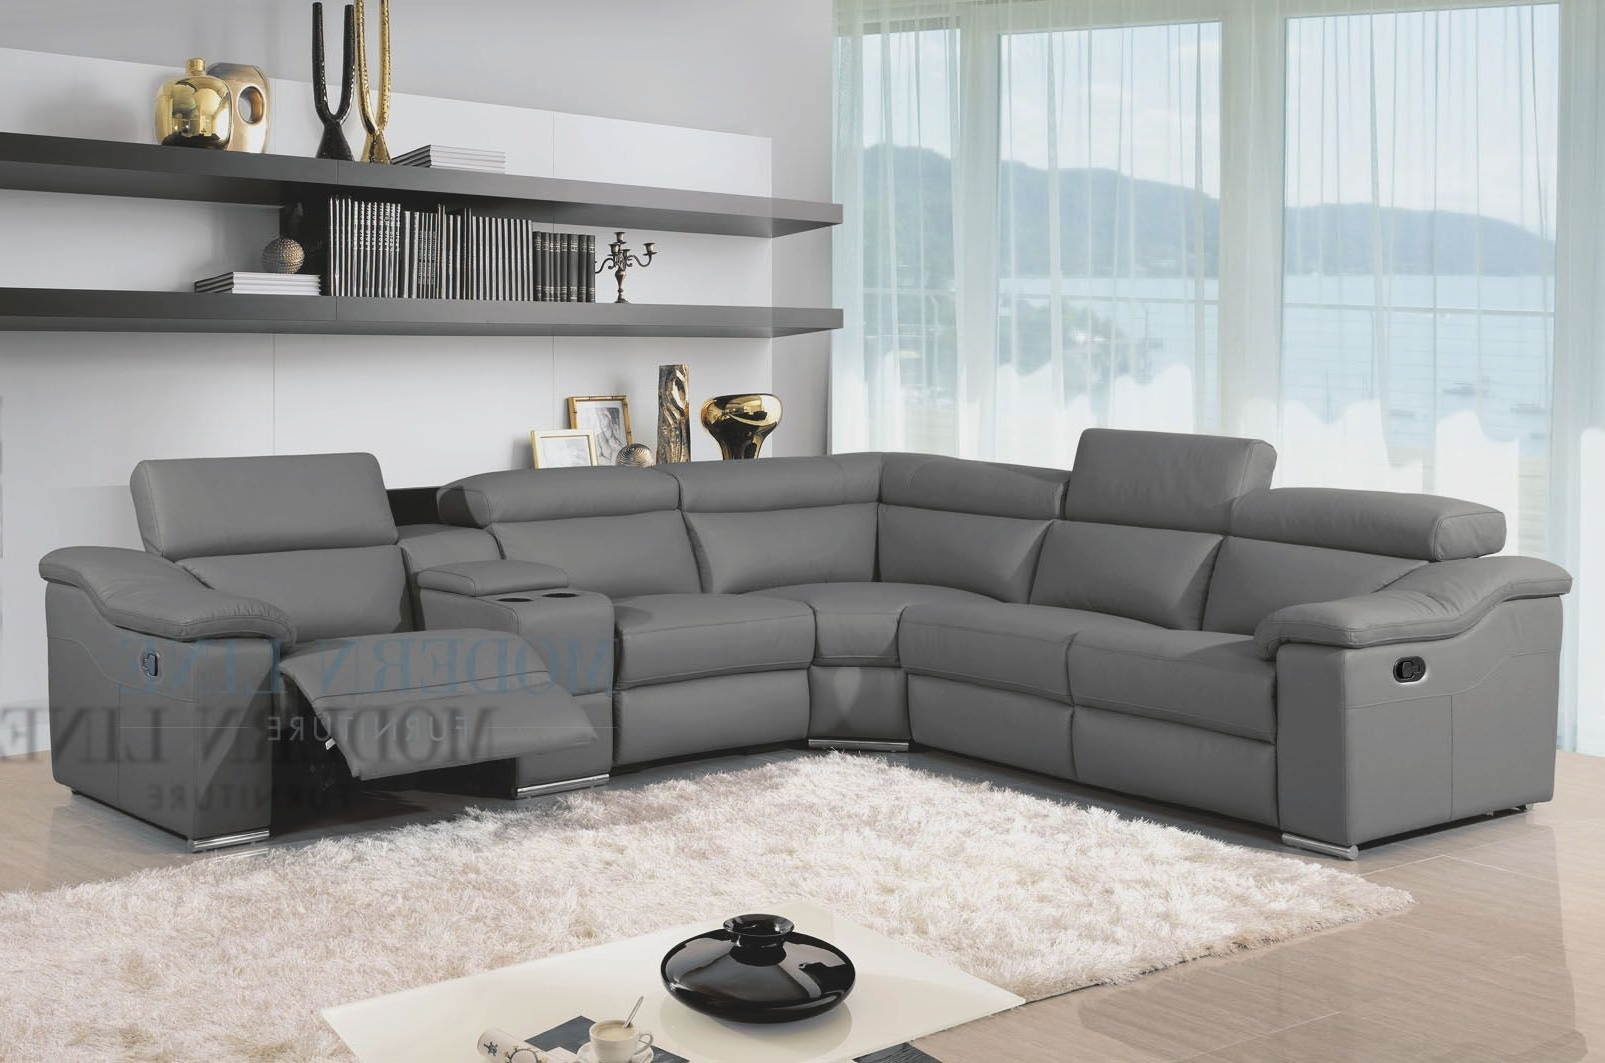 Awesome Great Charcoal Grey Sectional Sofa 29 About Remodel Home With Regard To Best And Newest Modern Reclining Leather Sofas (View 2 of 20)